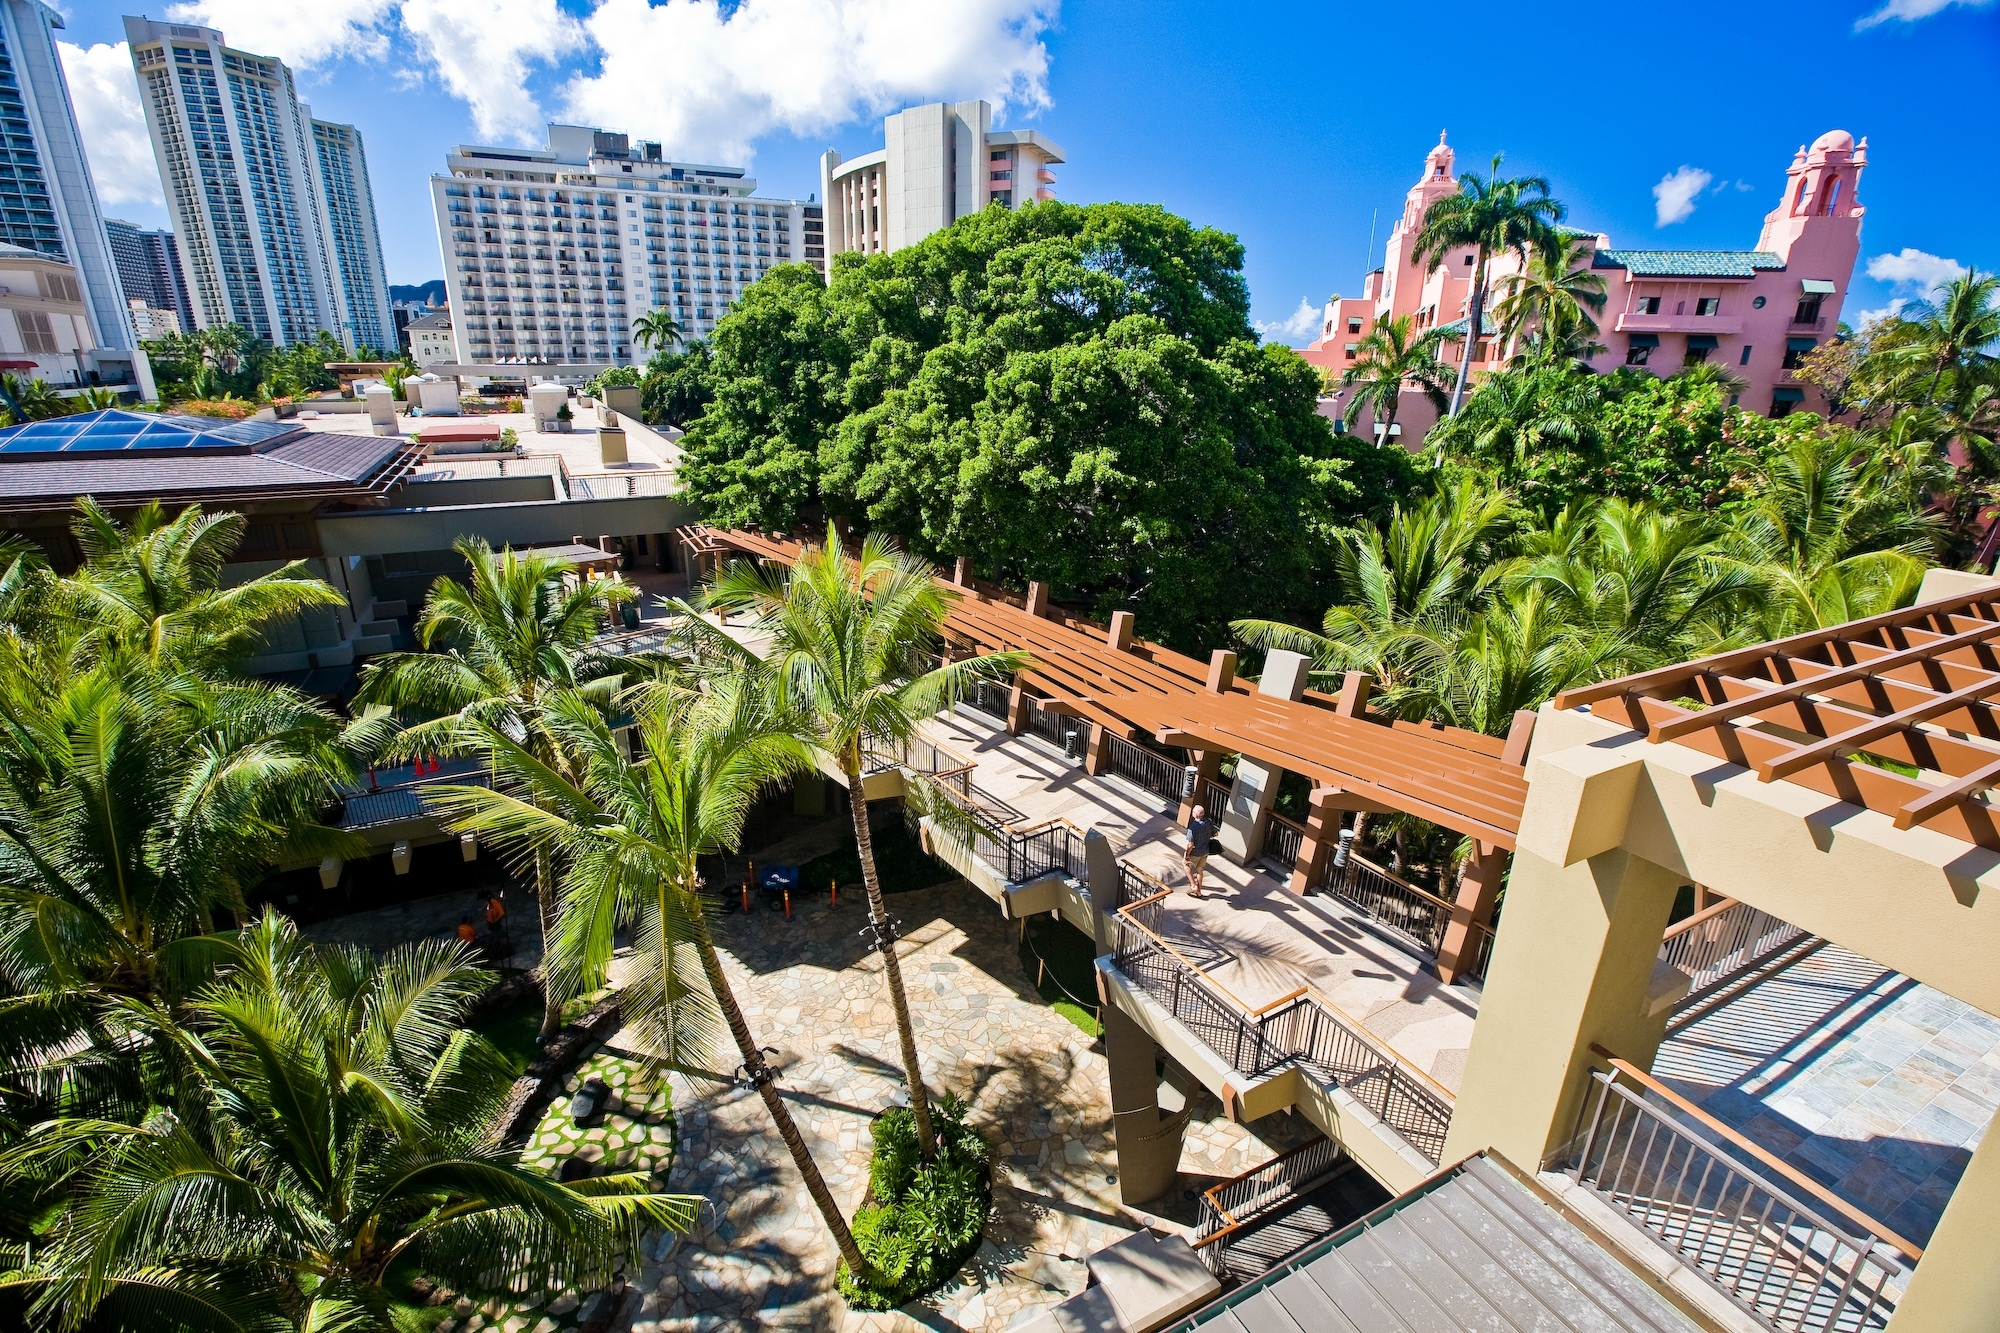 Royal Hawaiian Center A Commercial Cultural And